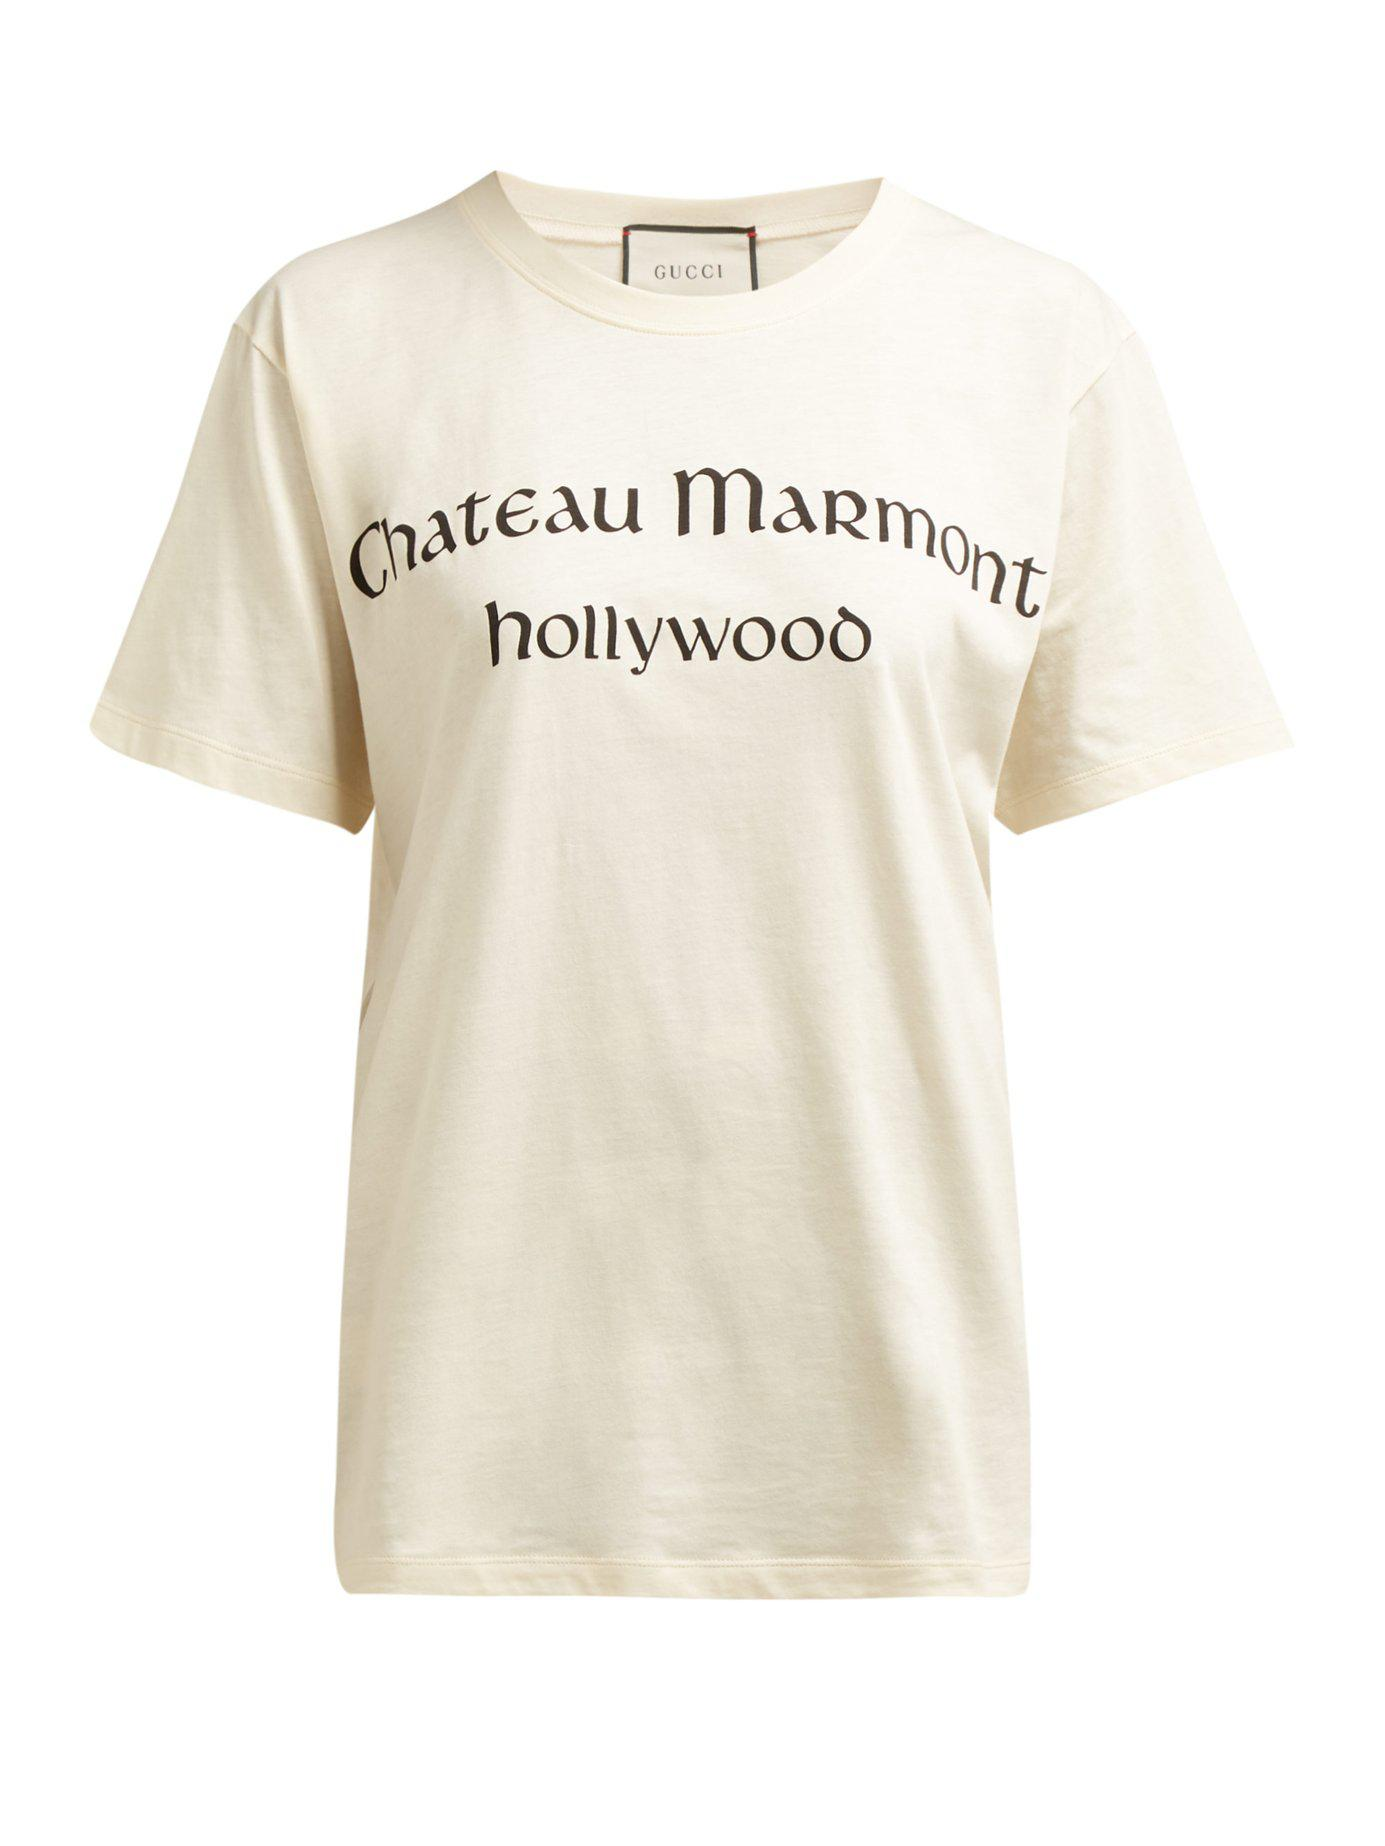 8daa242a7f5 Gucci - Multicolor Chateau Marmont Print Cotton T Shirt - Lyst. View  fullscreen